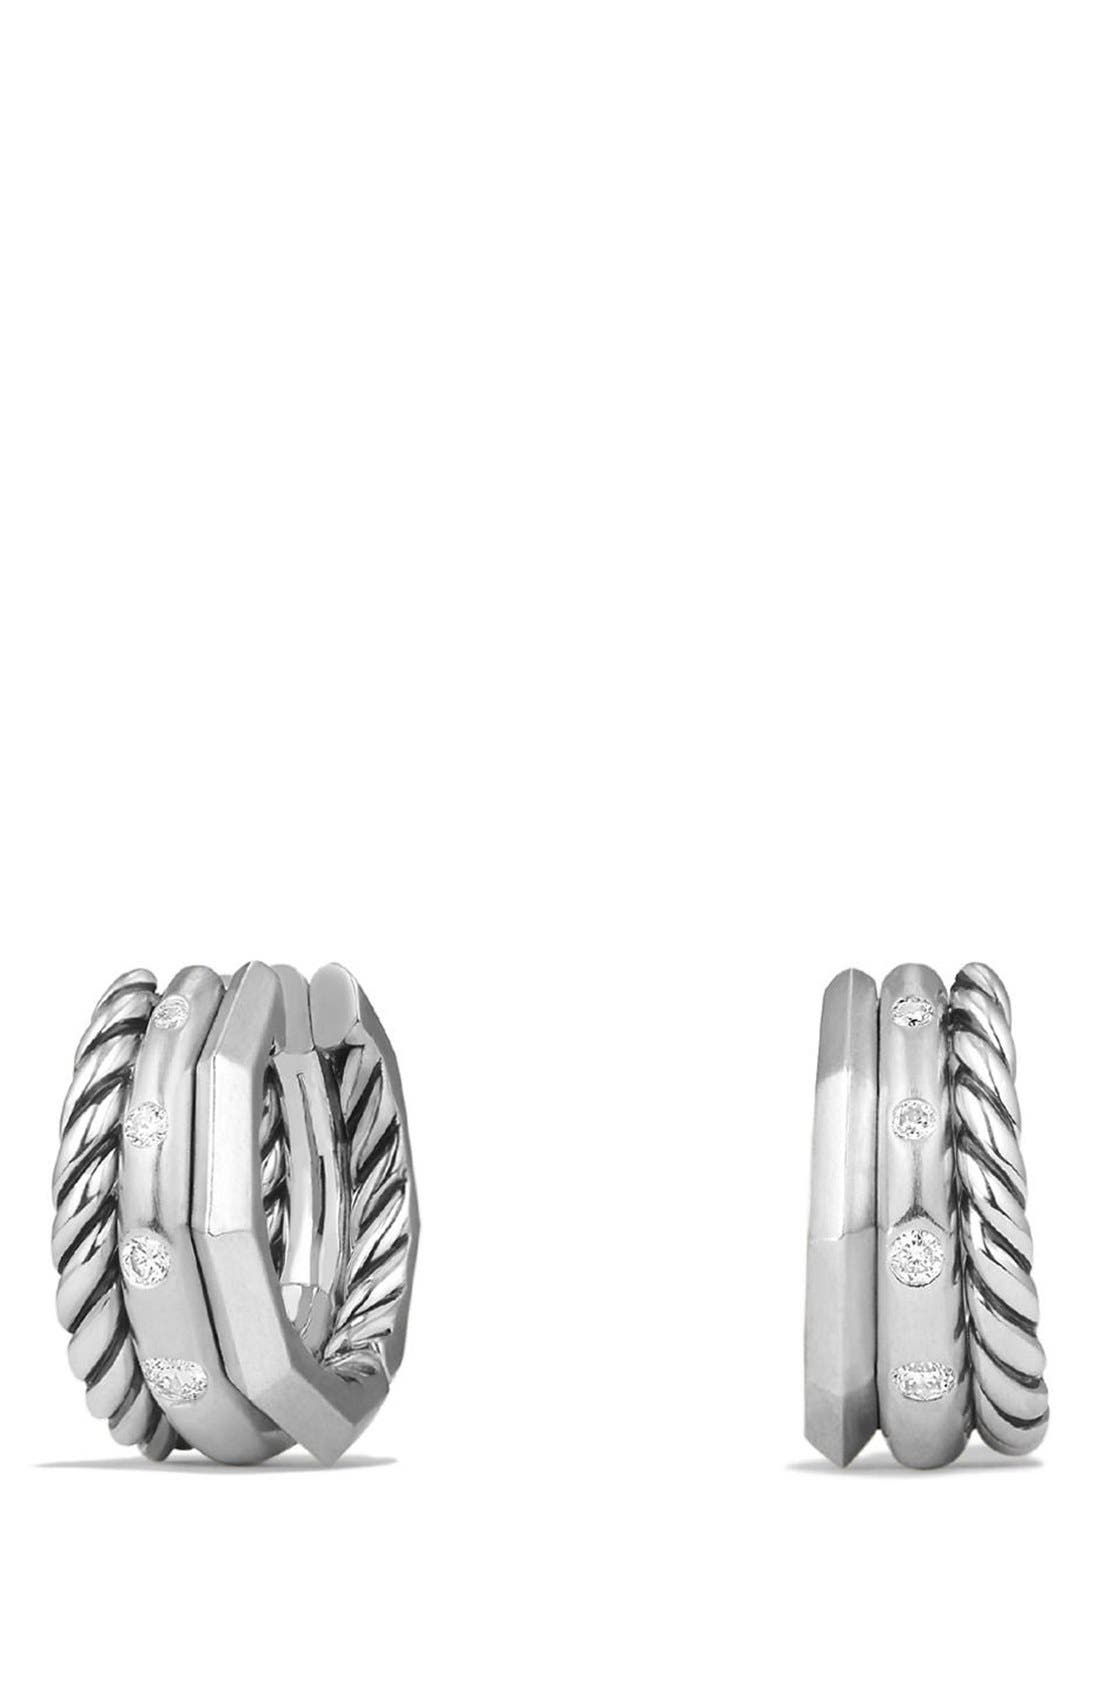 Alternate Image 1 Selected - David Yurman 'Stax' Diamond Hoop Earrings